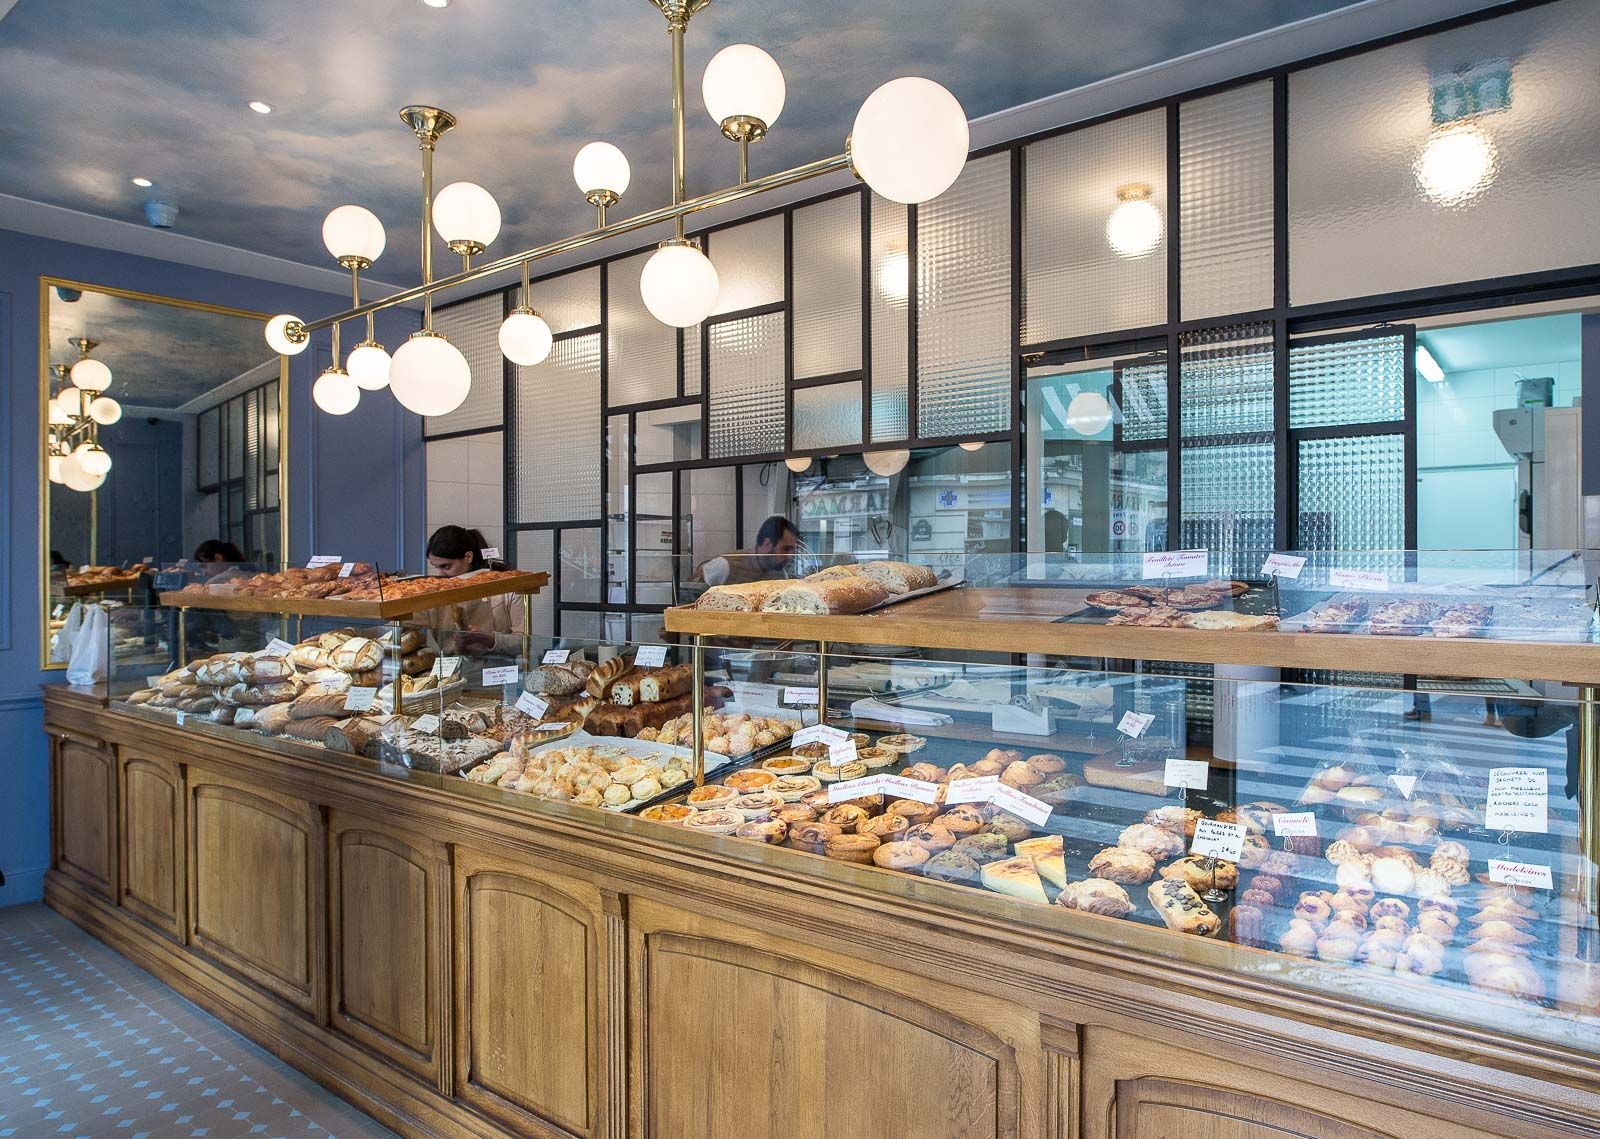 Gana boulangerie architecte interieur decorateur paris for Architecte interieur restaurant